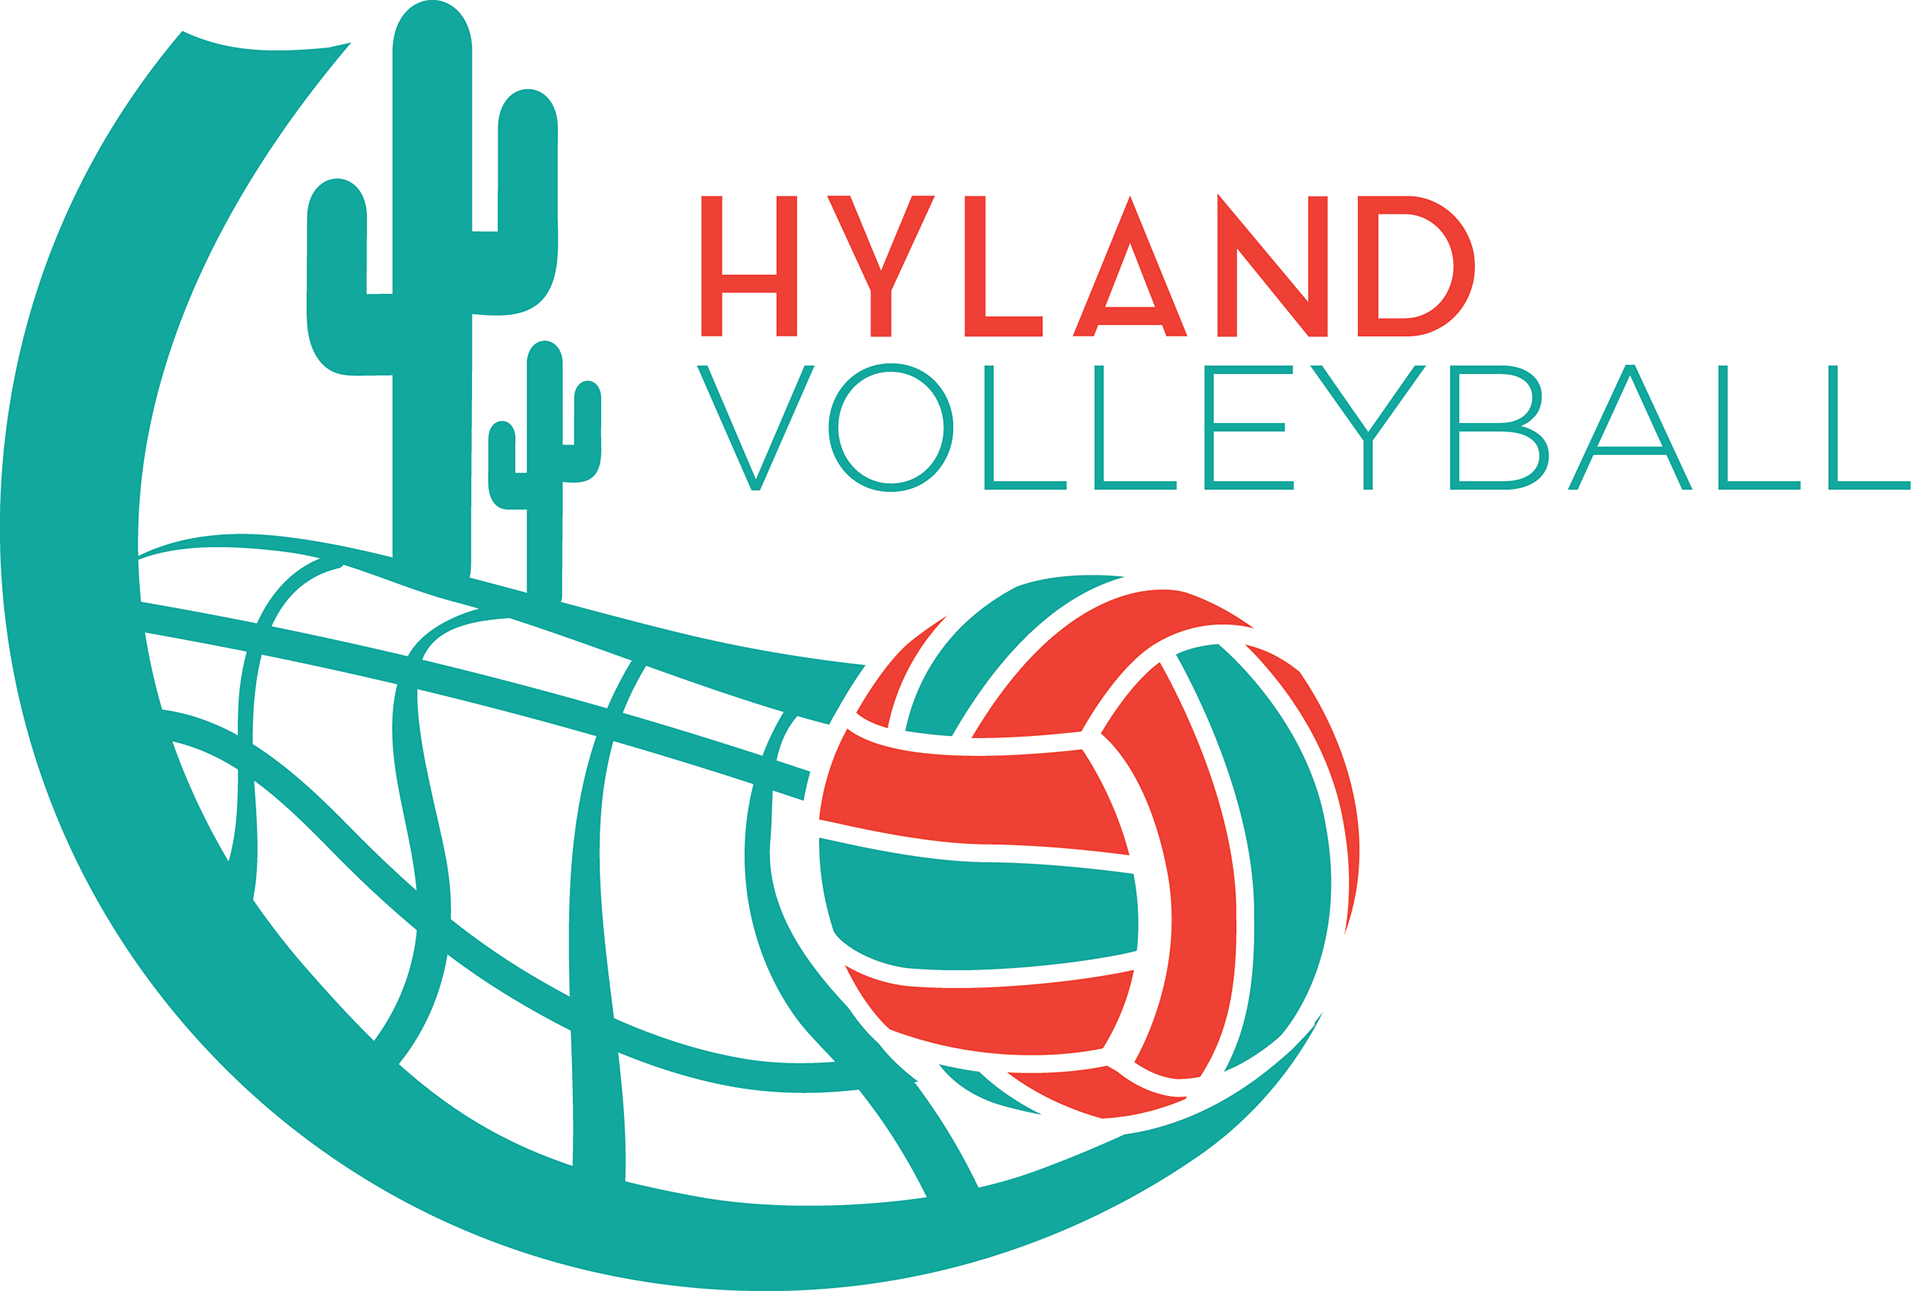 Clipart volleyball sand volleyball. Bw creative agency hyland